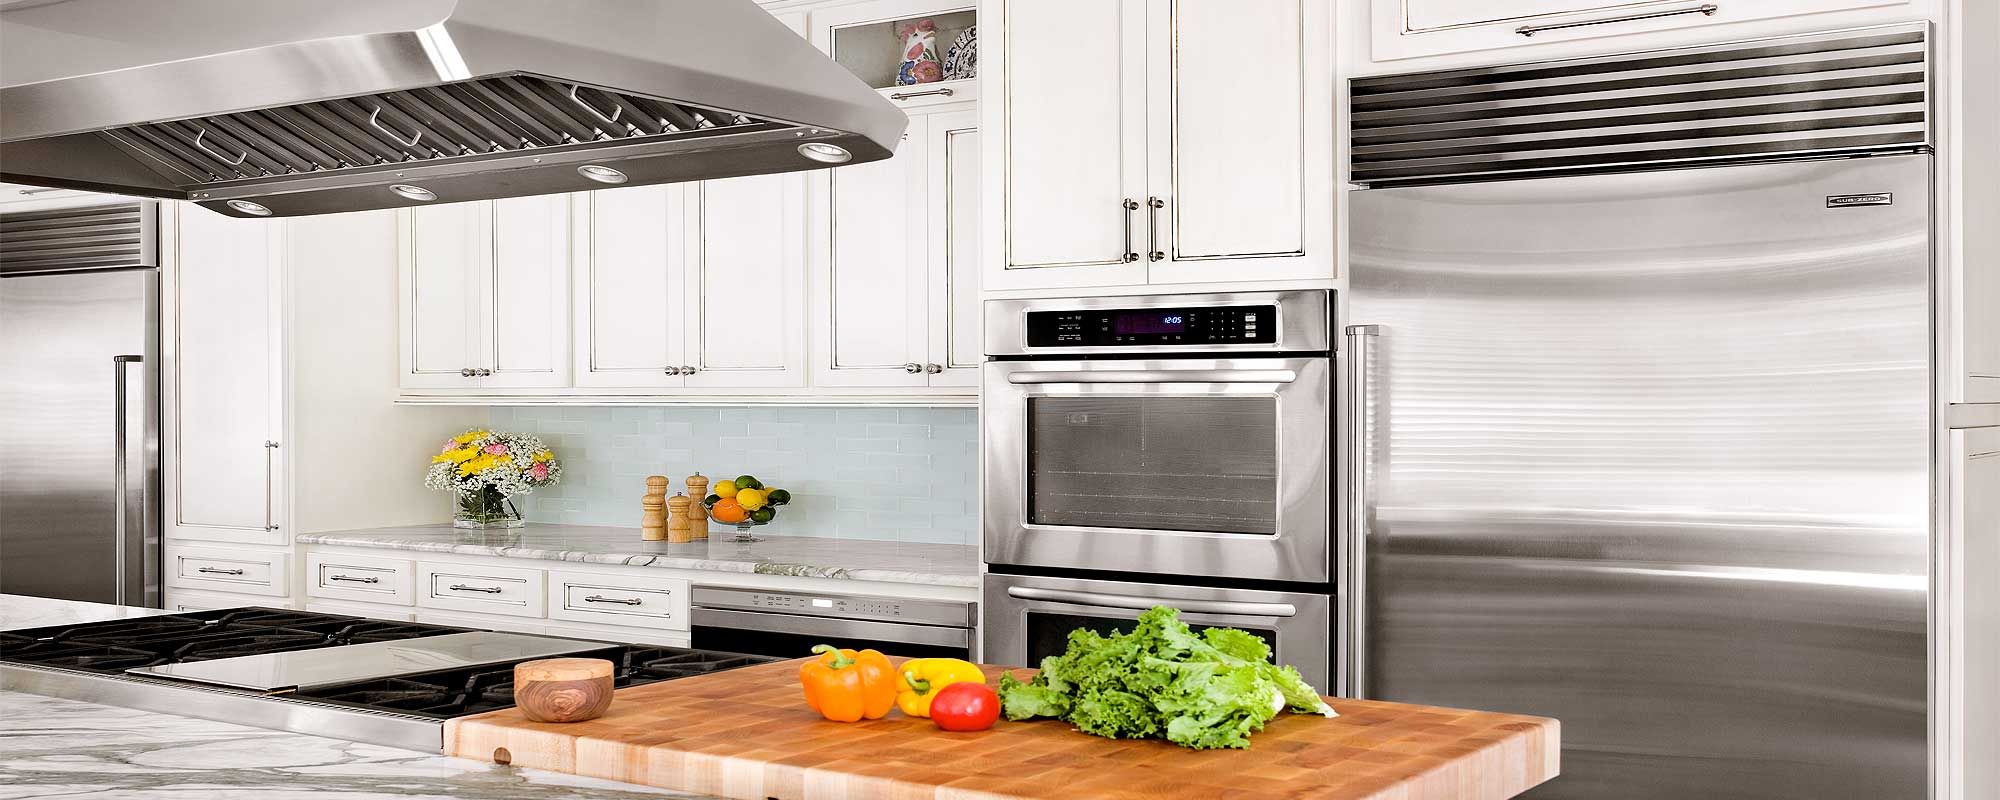 Sub Zero and Wolf appliance repair Pros service in Los Angeles, CA